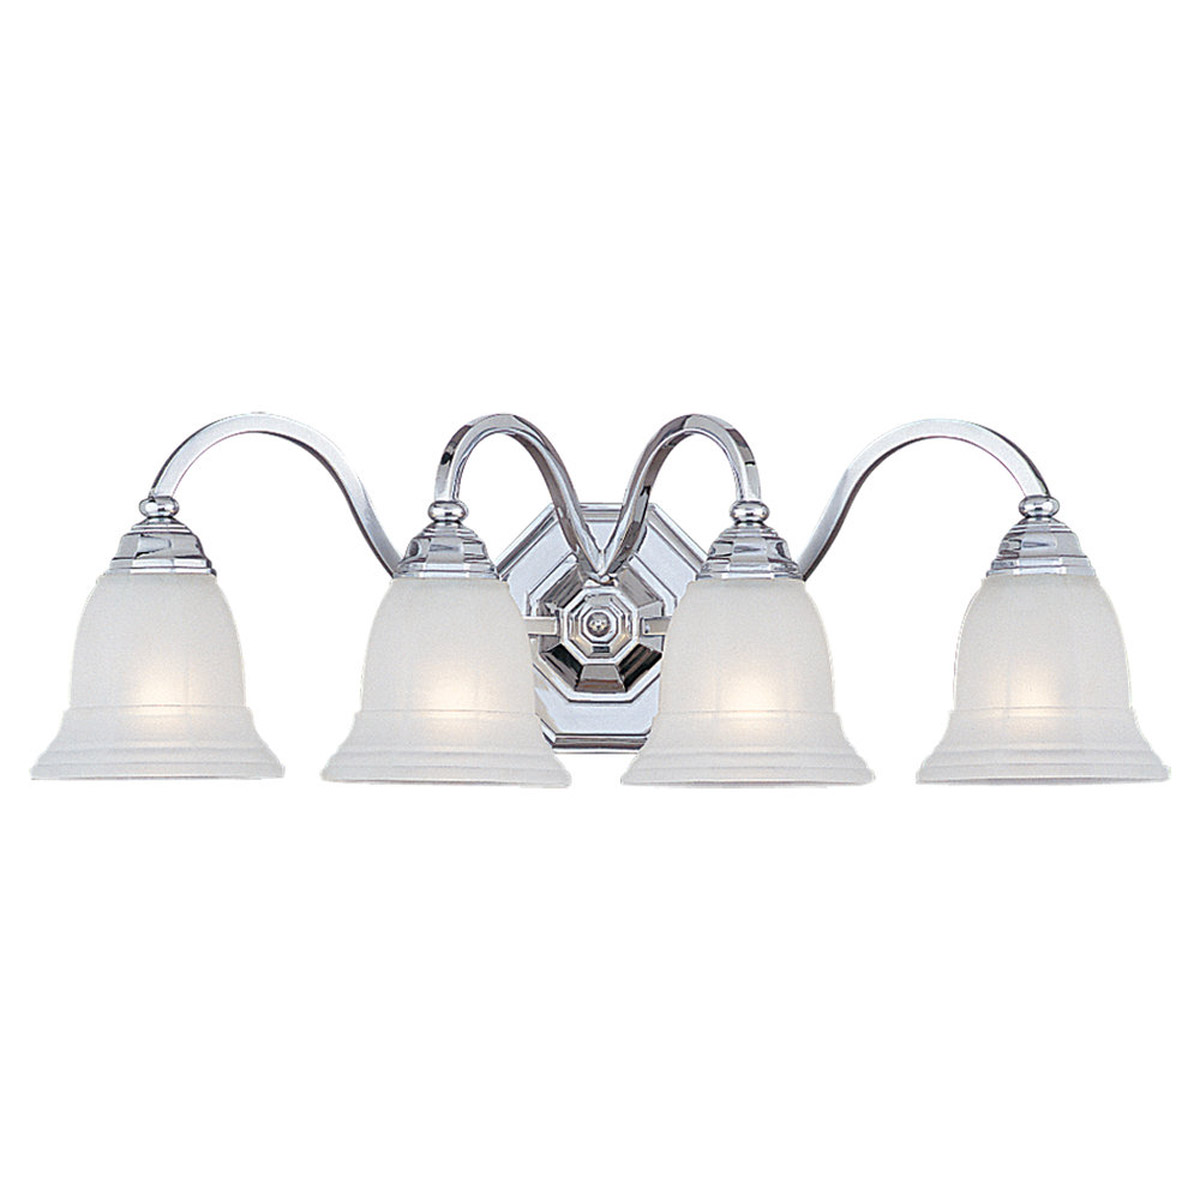 Sea Gull Lighting Blakely 4 Light Bath Vanity in Chrome 4060-05